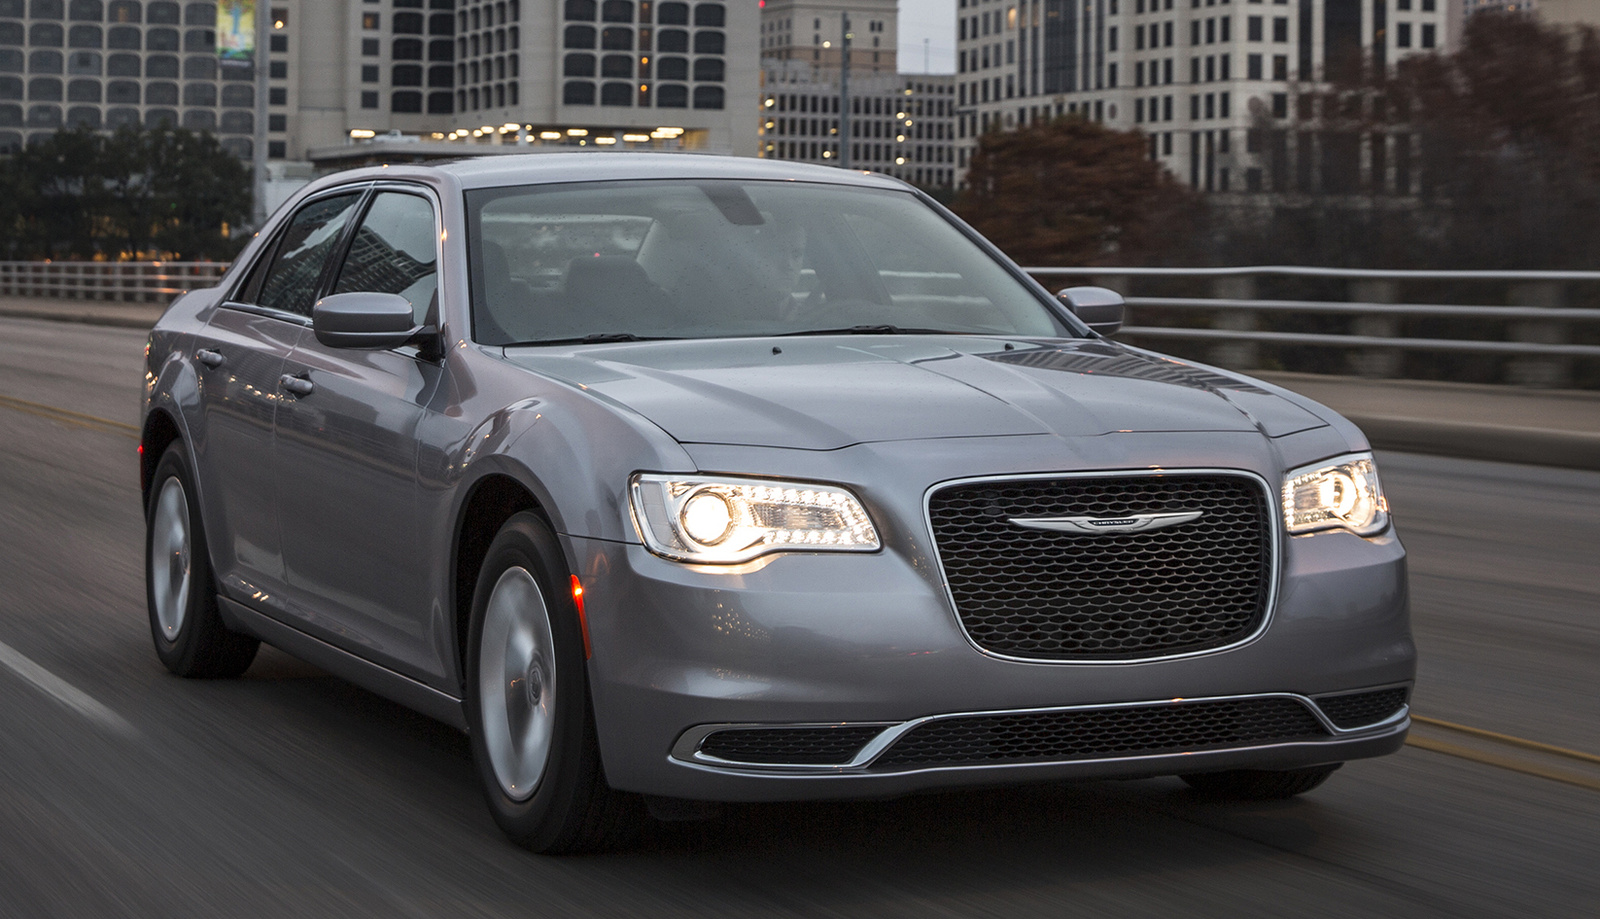 New 300 Chrysler 2016 >> 2016 Chrysler 300 - Overview - CarGurus